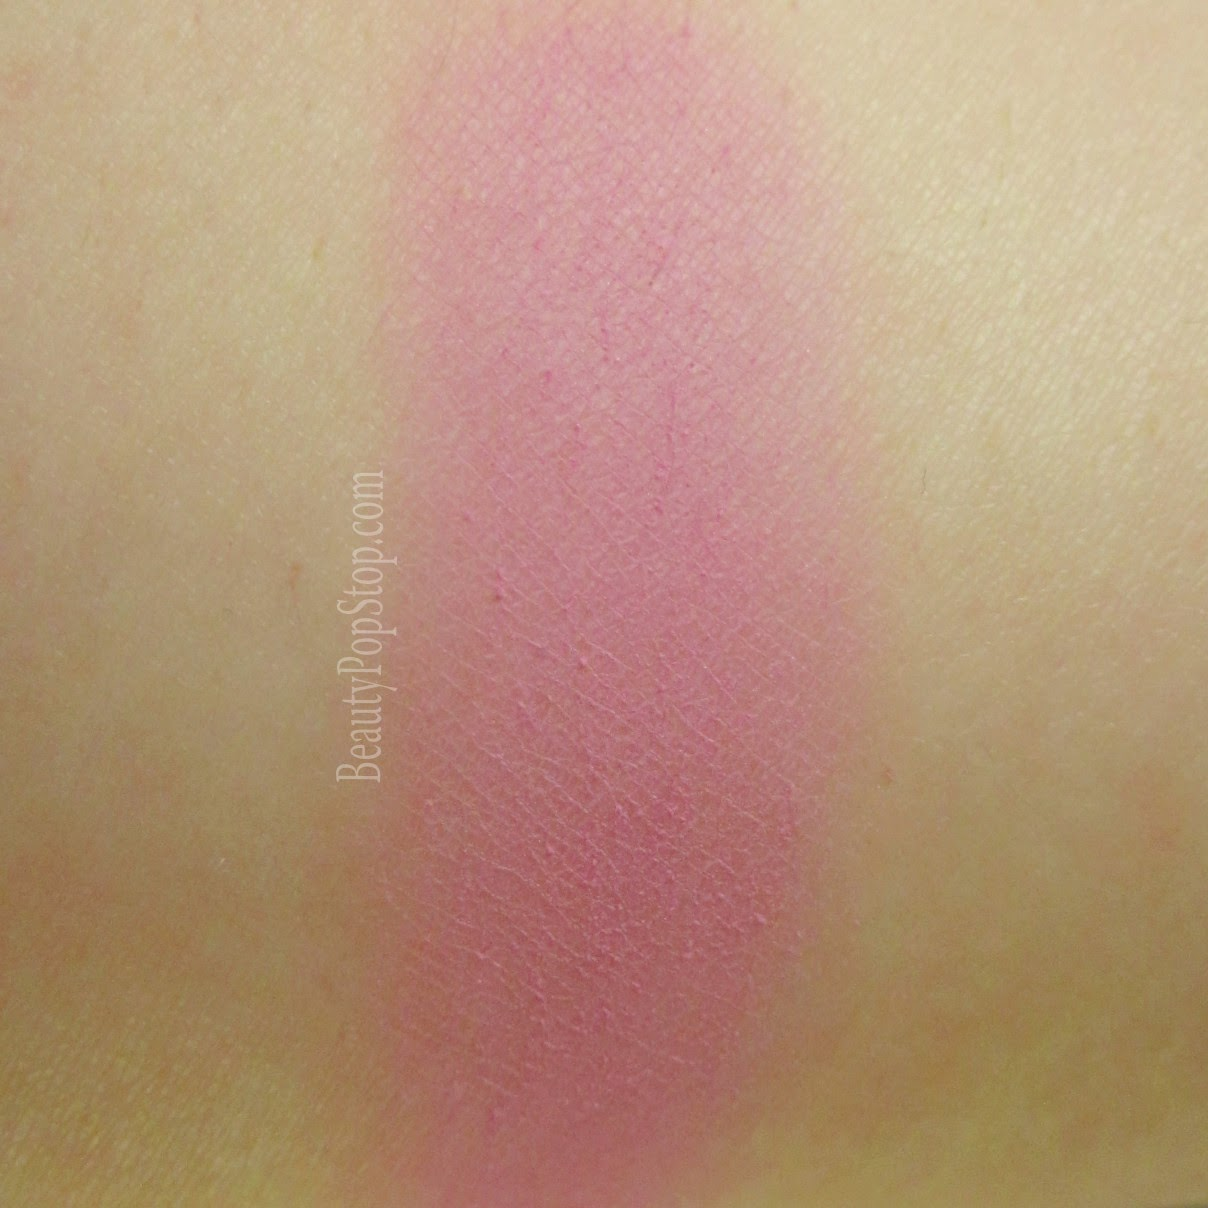 paul and joe beaute spring 2014 color powder azalea blush swatch